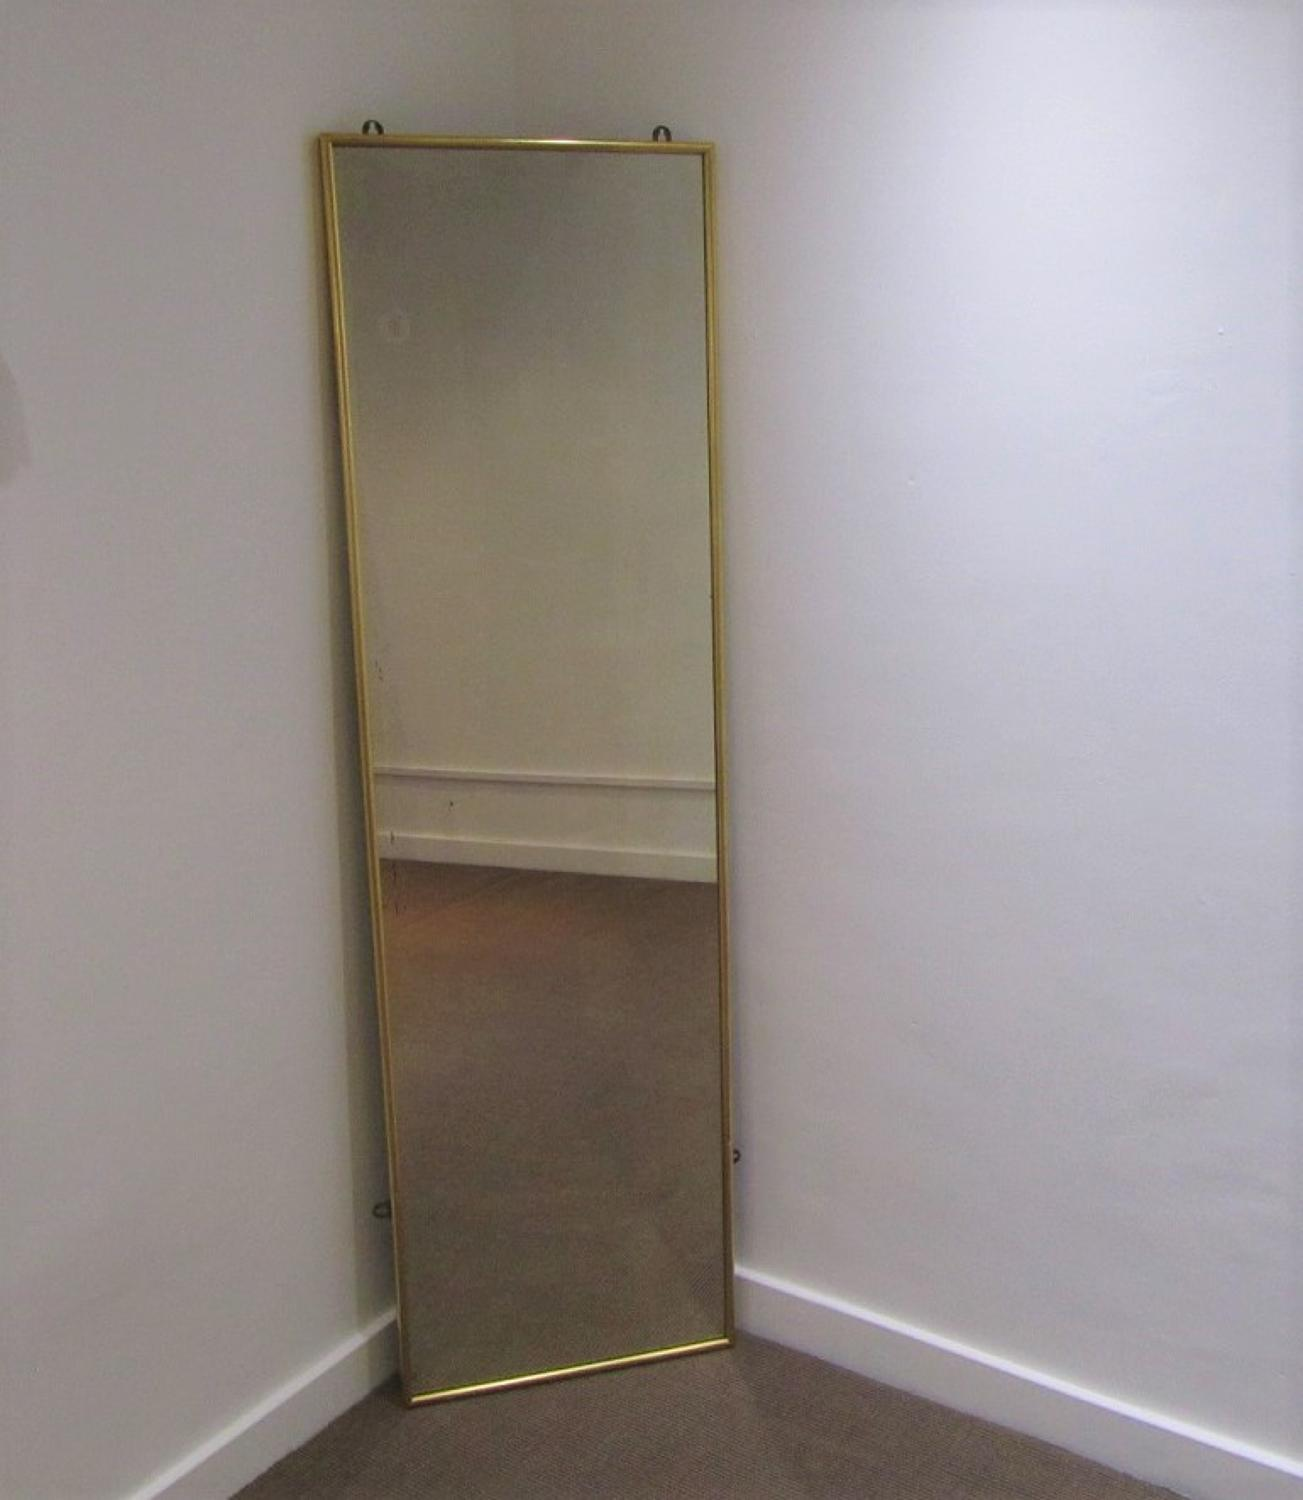 A Gilt framed pier mirror